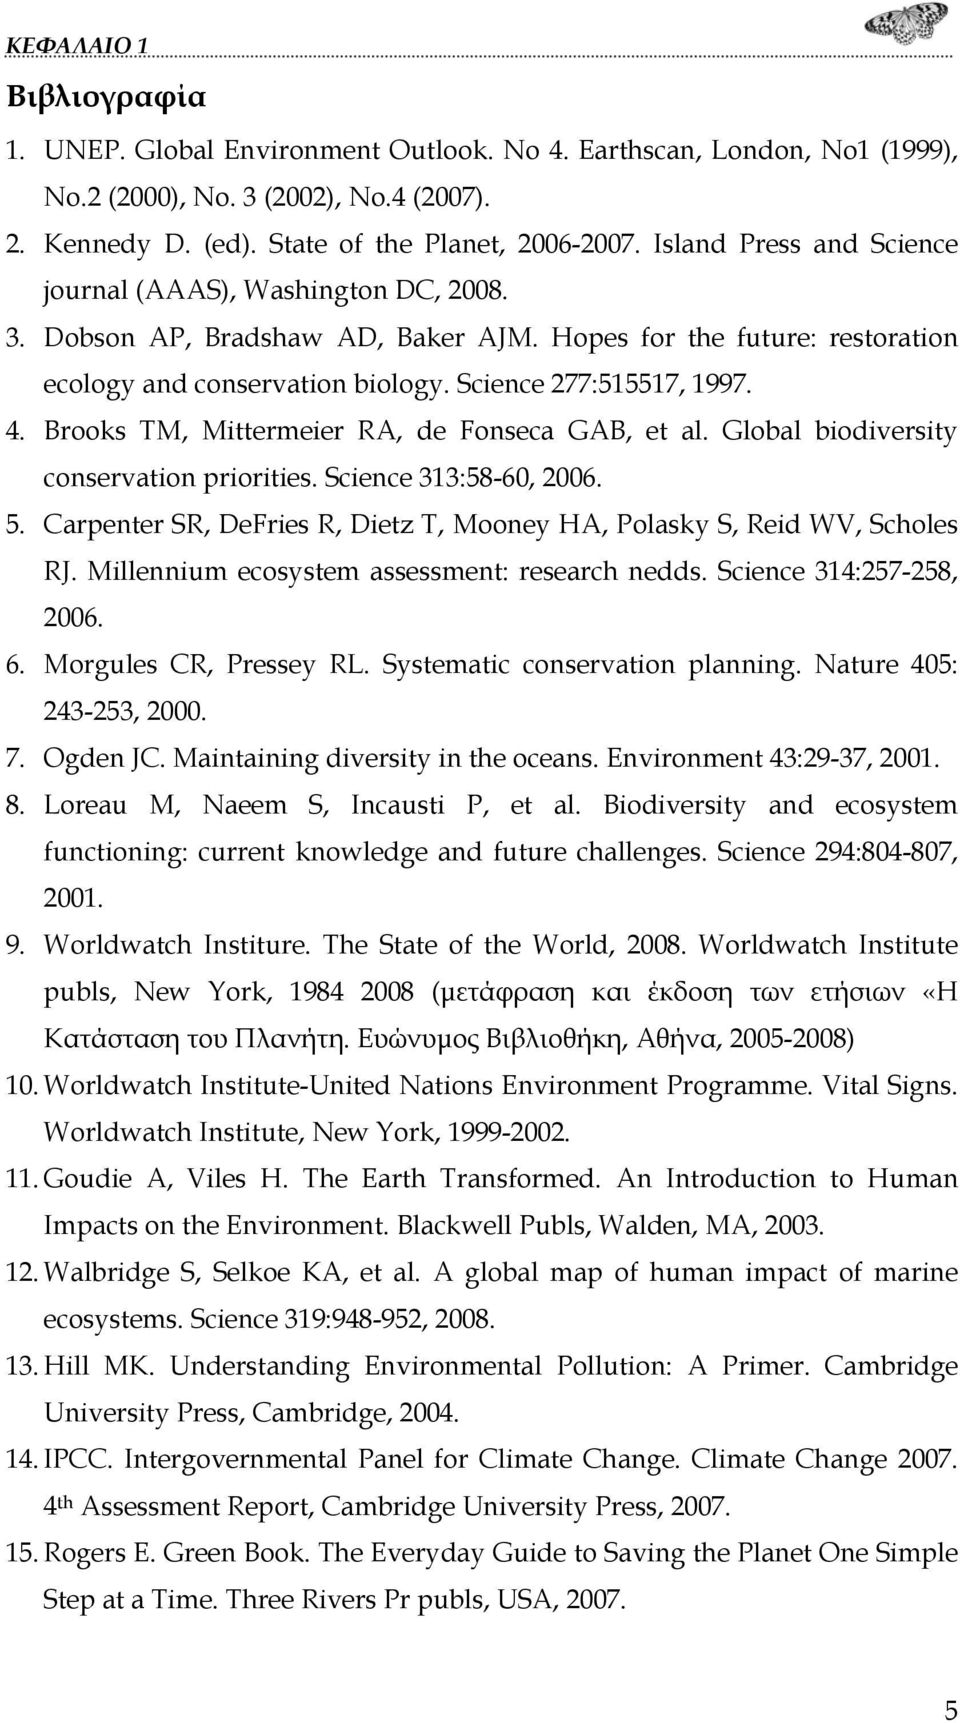 Brooks TM, Mittermeier RA, de Fonseca GAB, et al. Global biodiversity conservation priorities. Science 313:58-60, 2006. 5. Carpenter SR, DeFries R, Dietz T, Mooney HA, Polasky S, Reid WV, Scholes RJ.